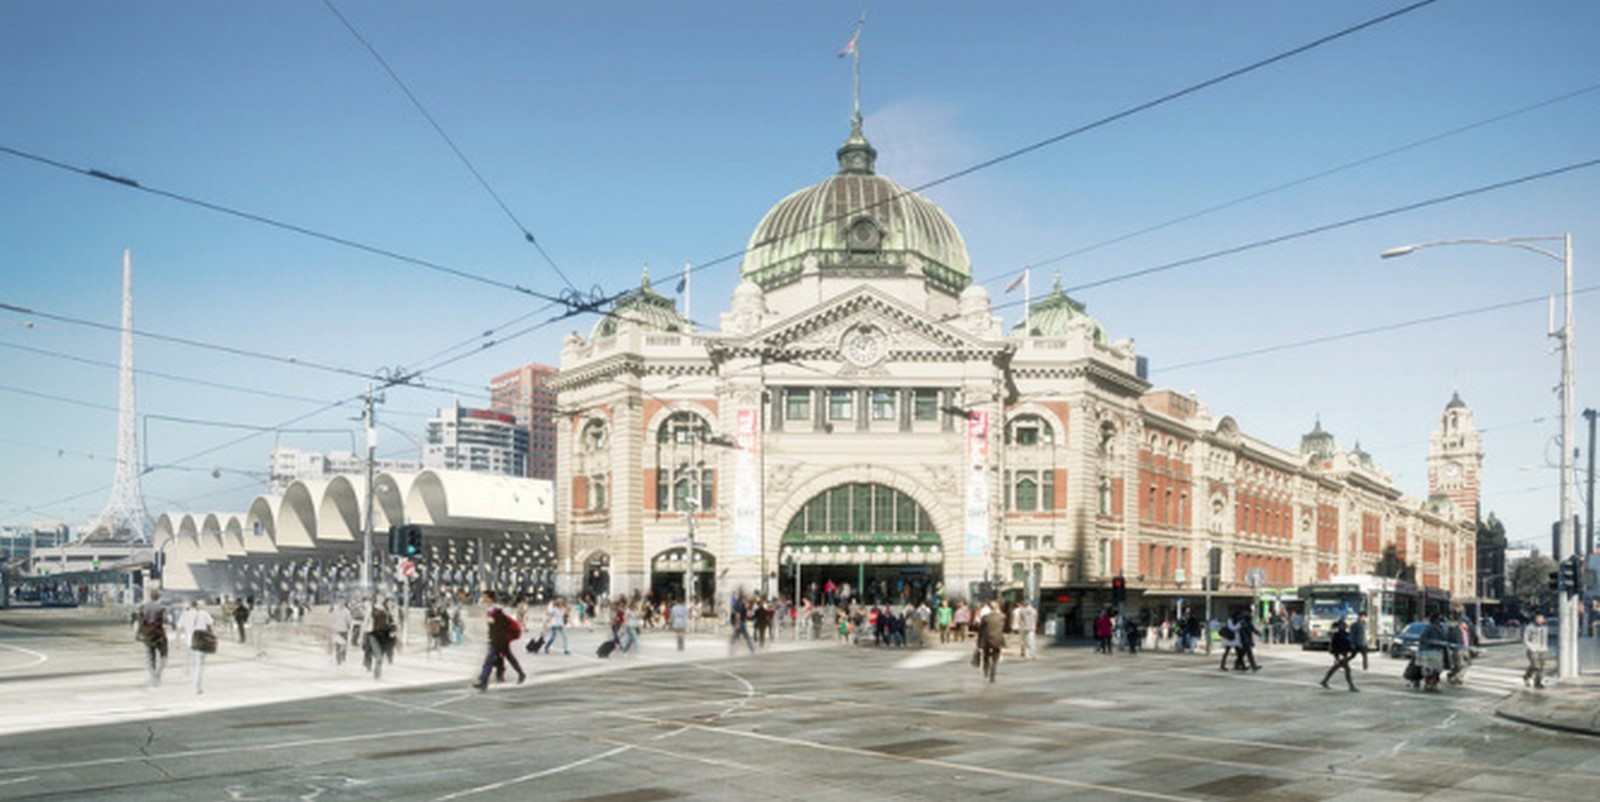 Flinders Street Station by Hassell, Herzog de Meuron, and Purcell Sheet1